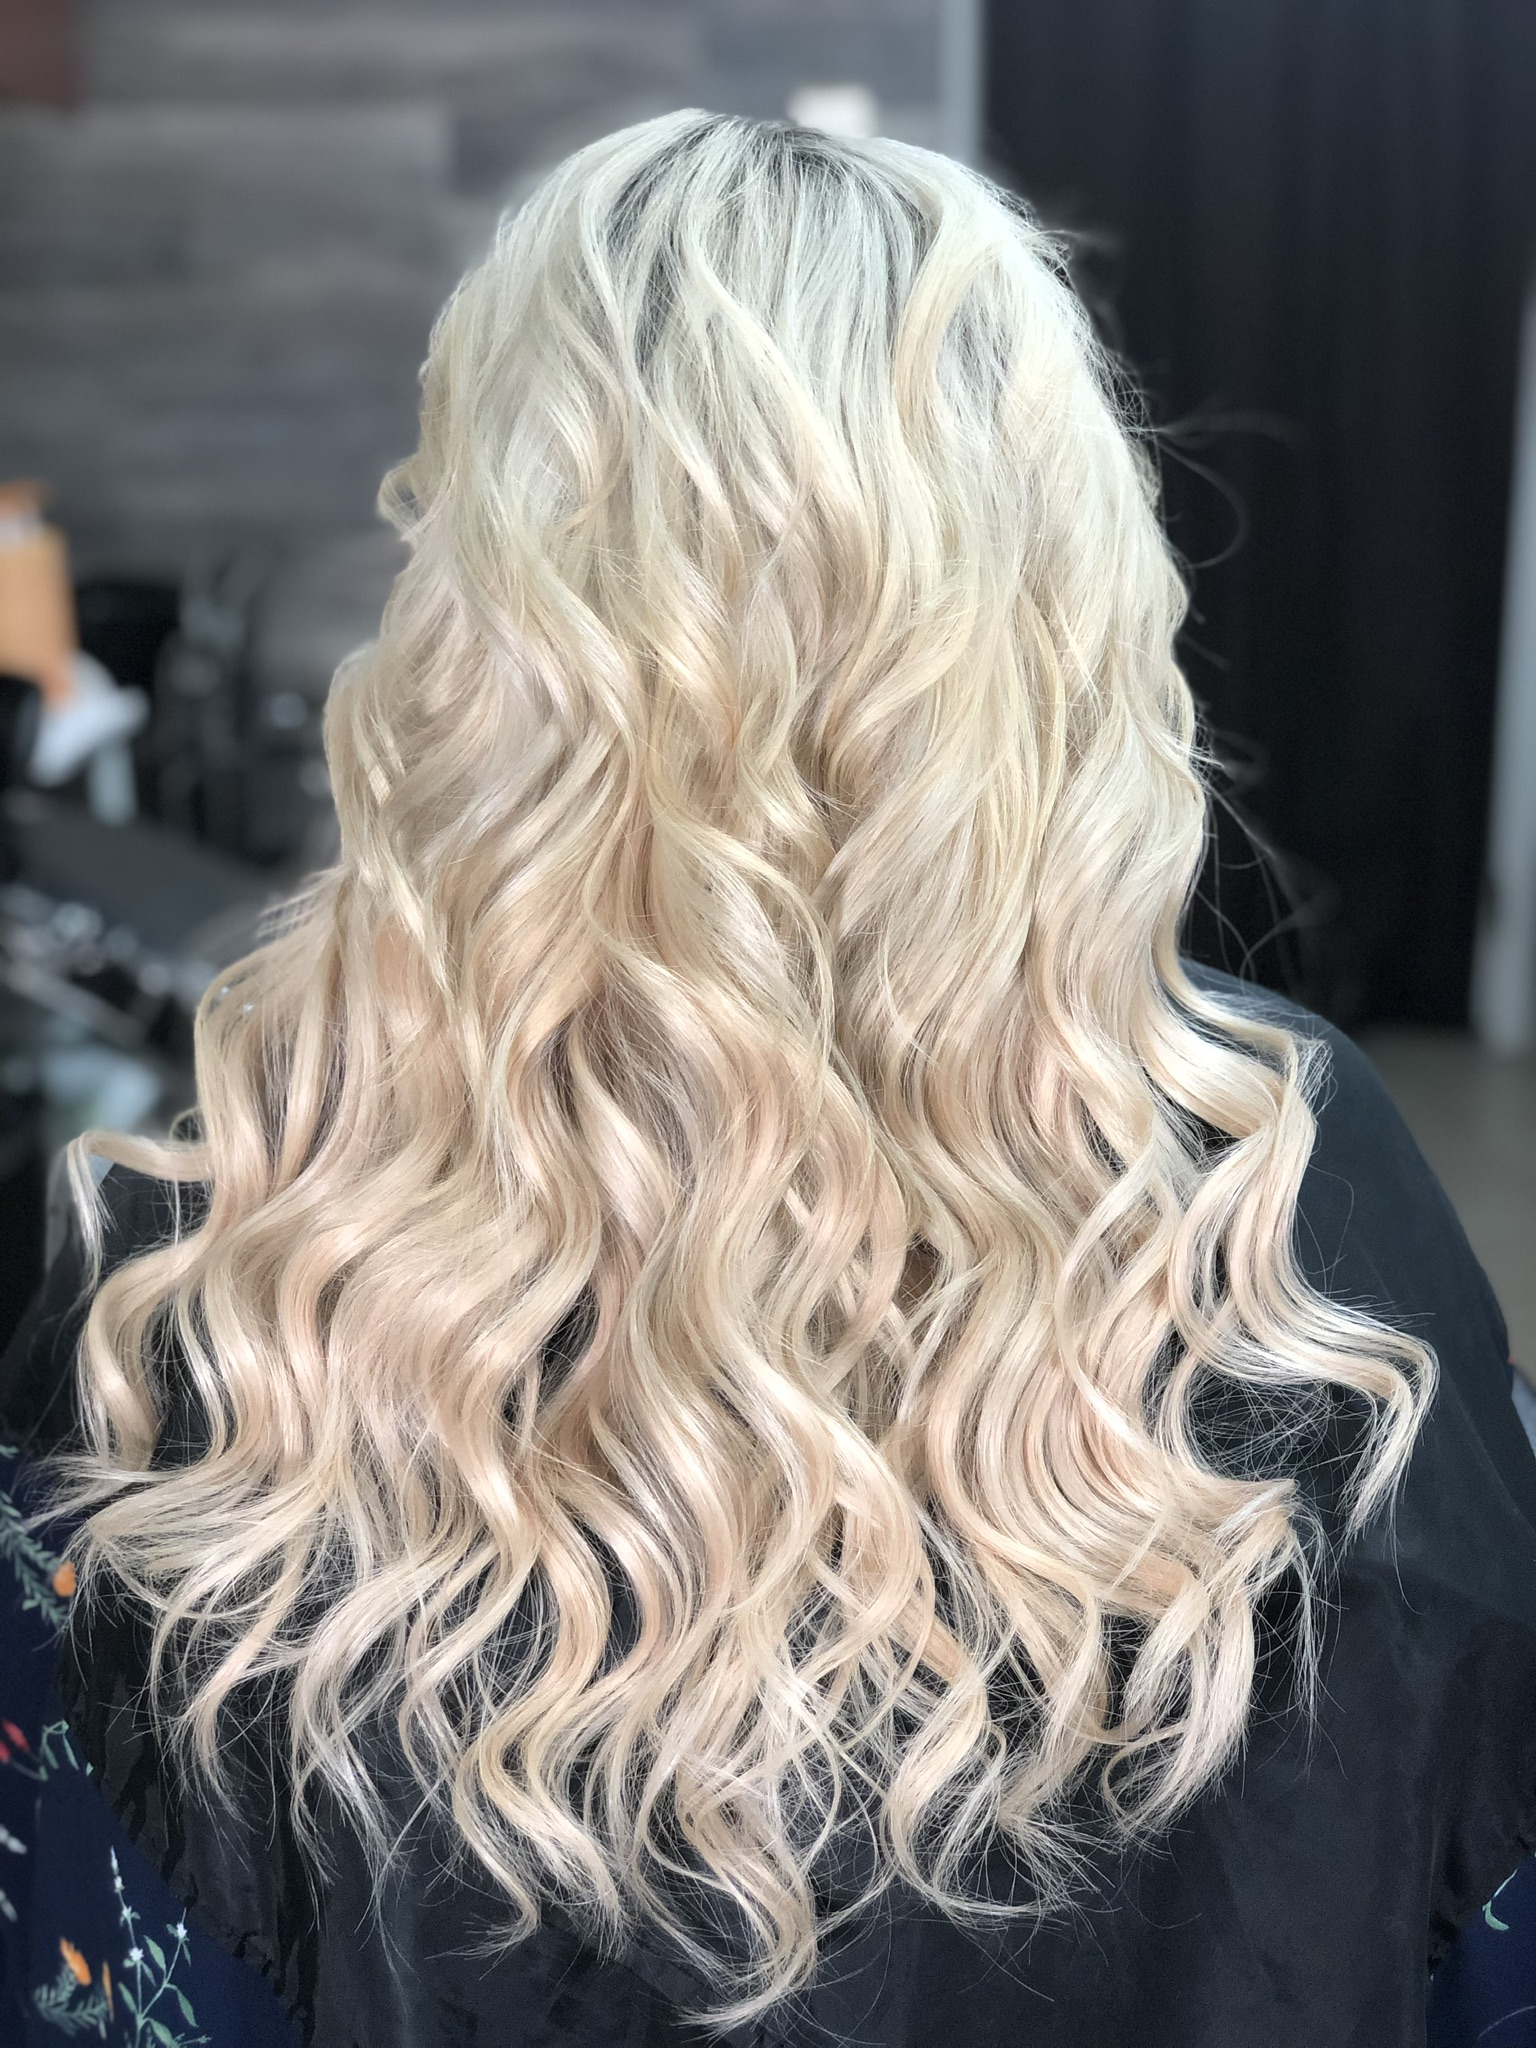 Hair Extensions and Highlights